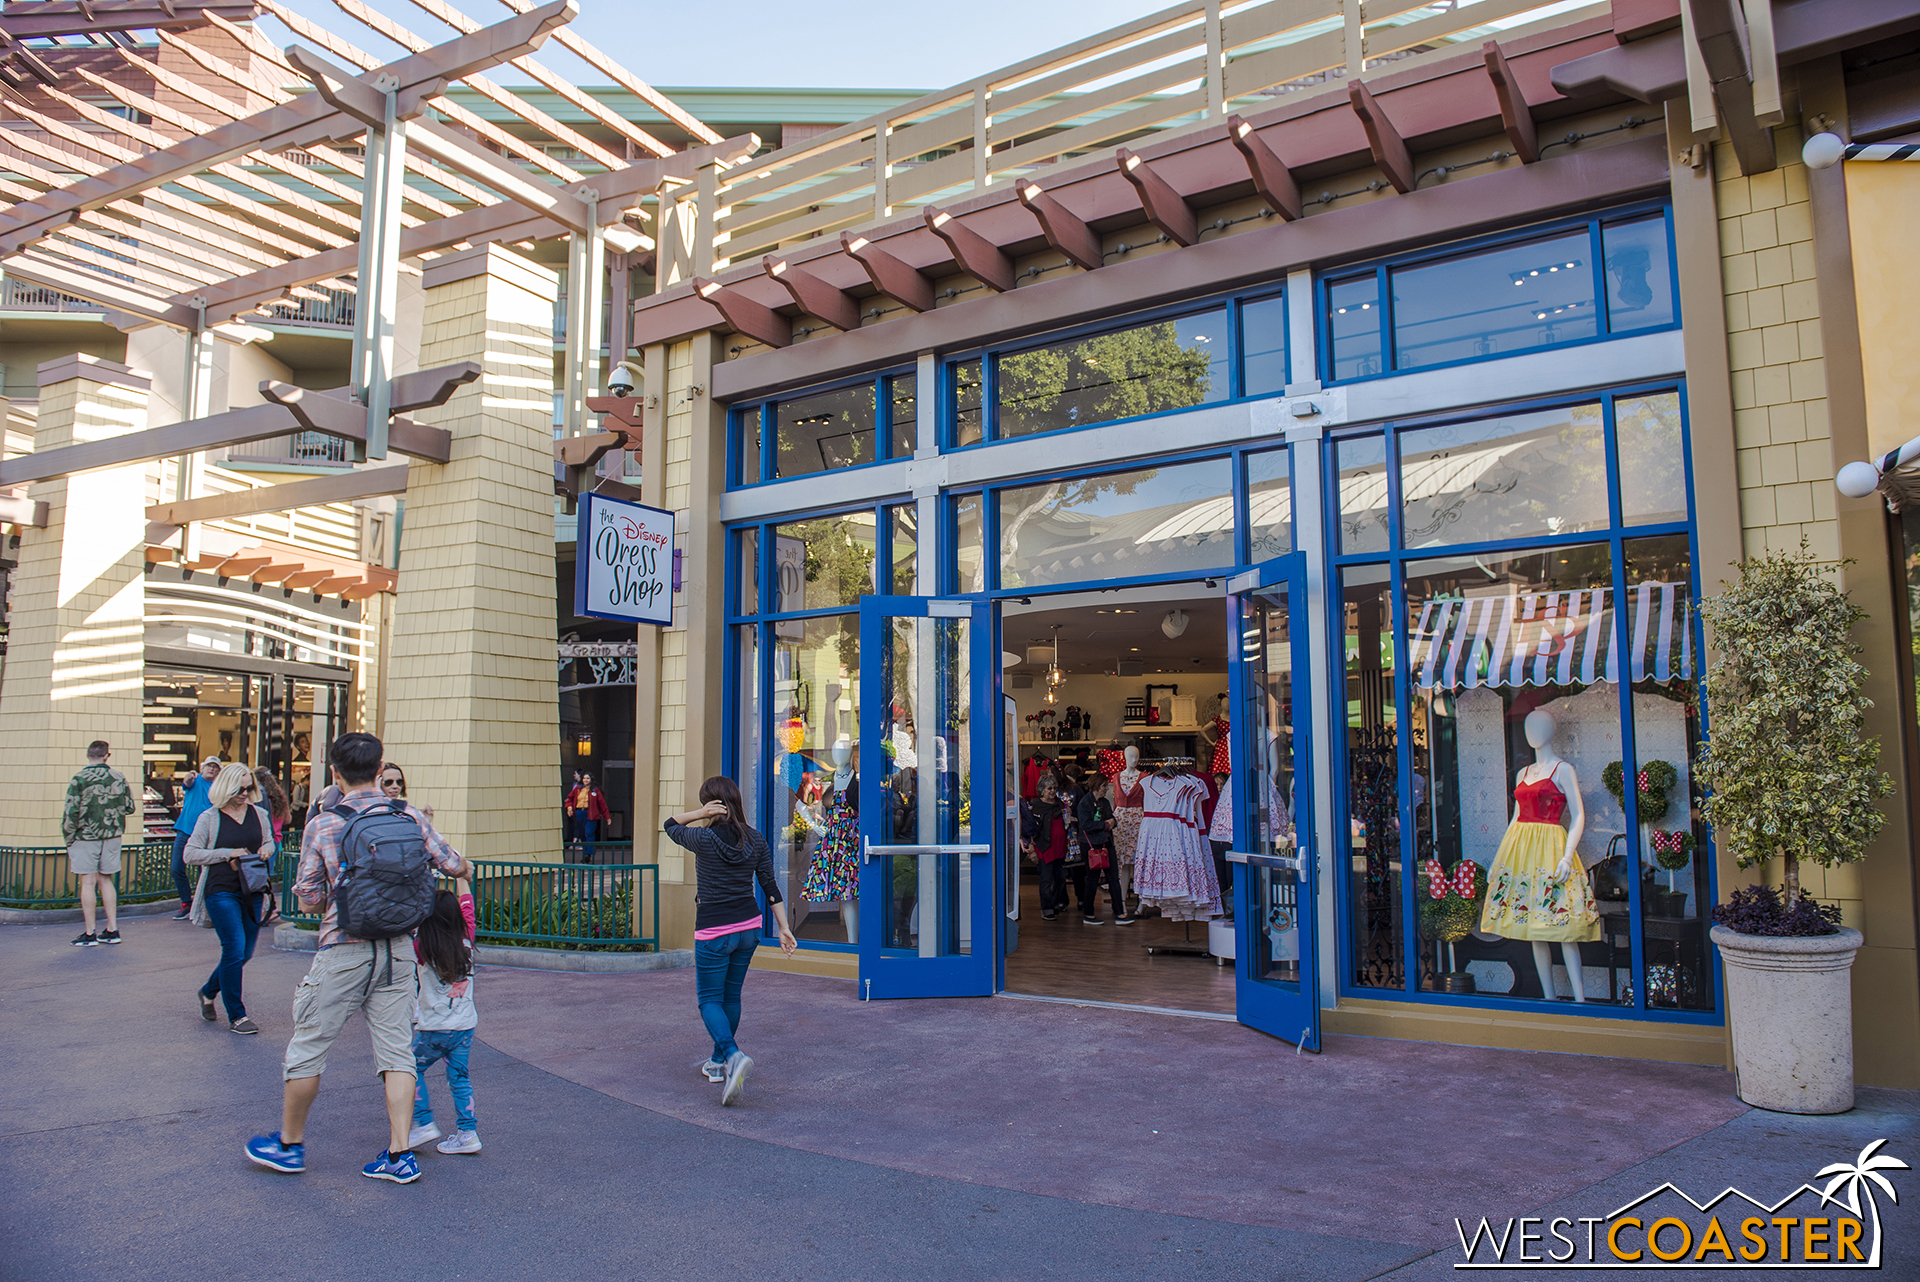 The Disney Dress Shop has finished its move to the old Anna and Elsa boutique, at the corner of the pathway into the Grand Californian Hotel.